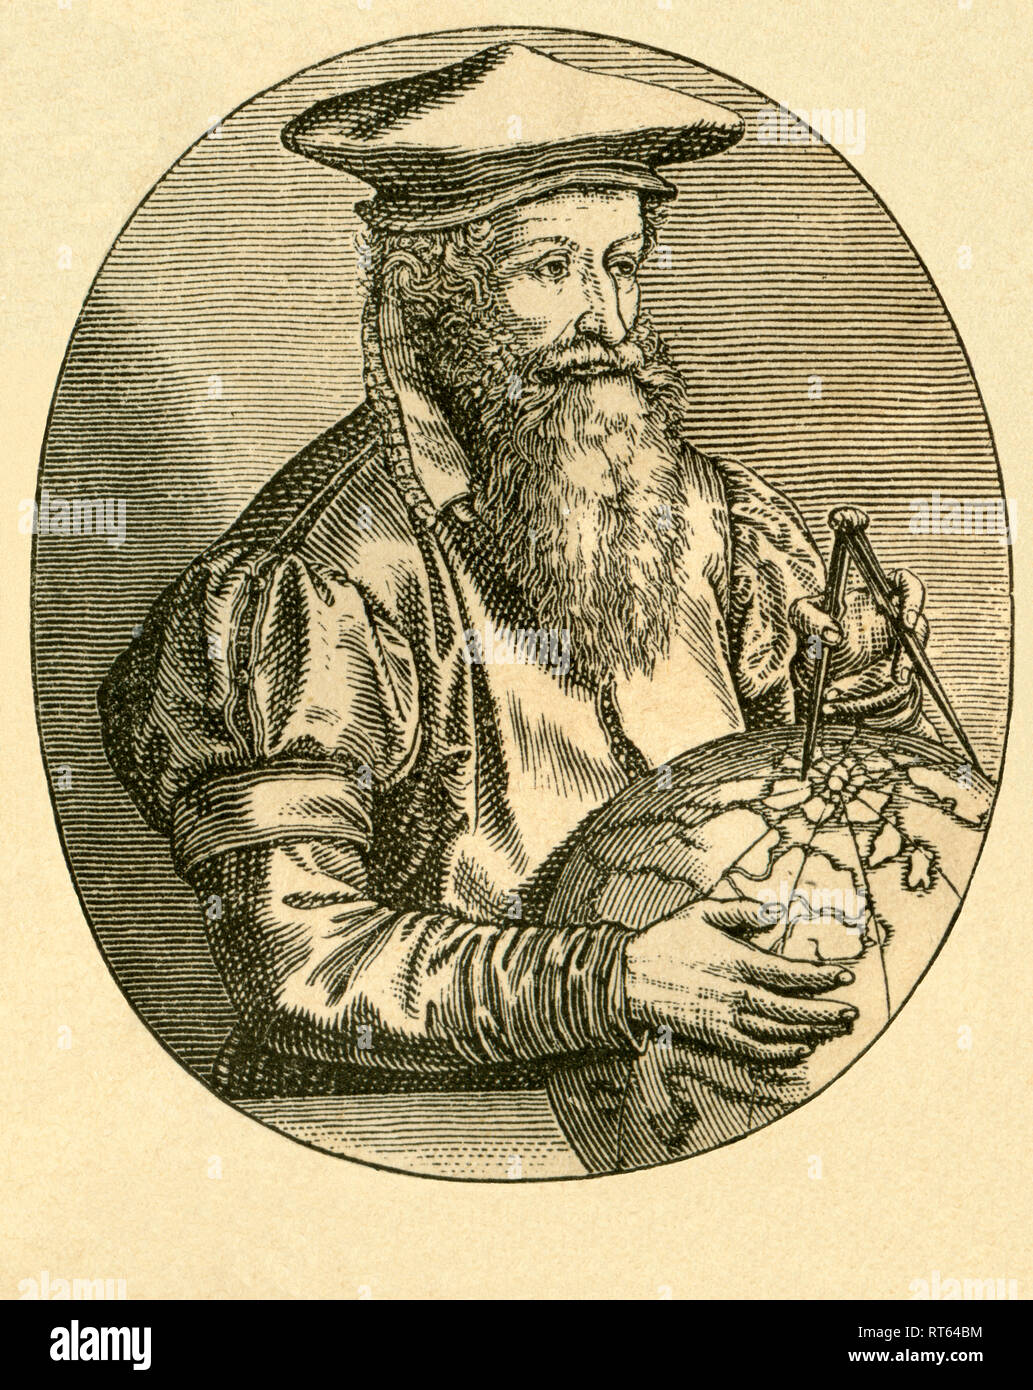 """Gerhard Mercator, cartographer and geographer, 16th century, illustration from: """"Die Welt in Bildern """" (images of the world), by Dr. Chr. G. Hottinger, self-published, Berlin, Strasbourg, 1881., Additional-Rights-Clearance-Info-Not-Available Stock Photo"""